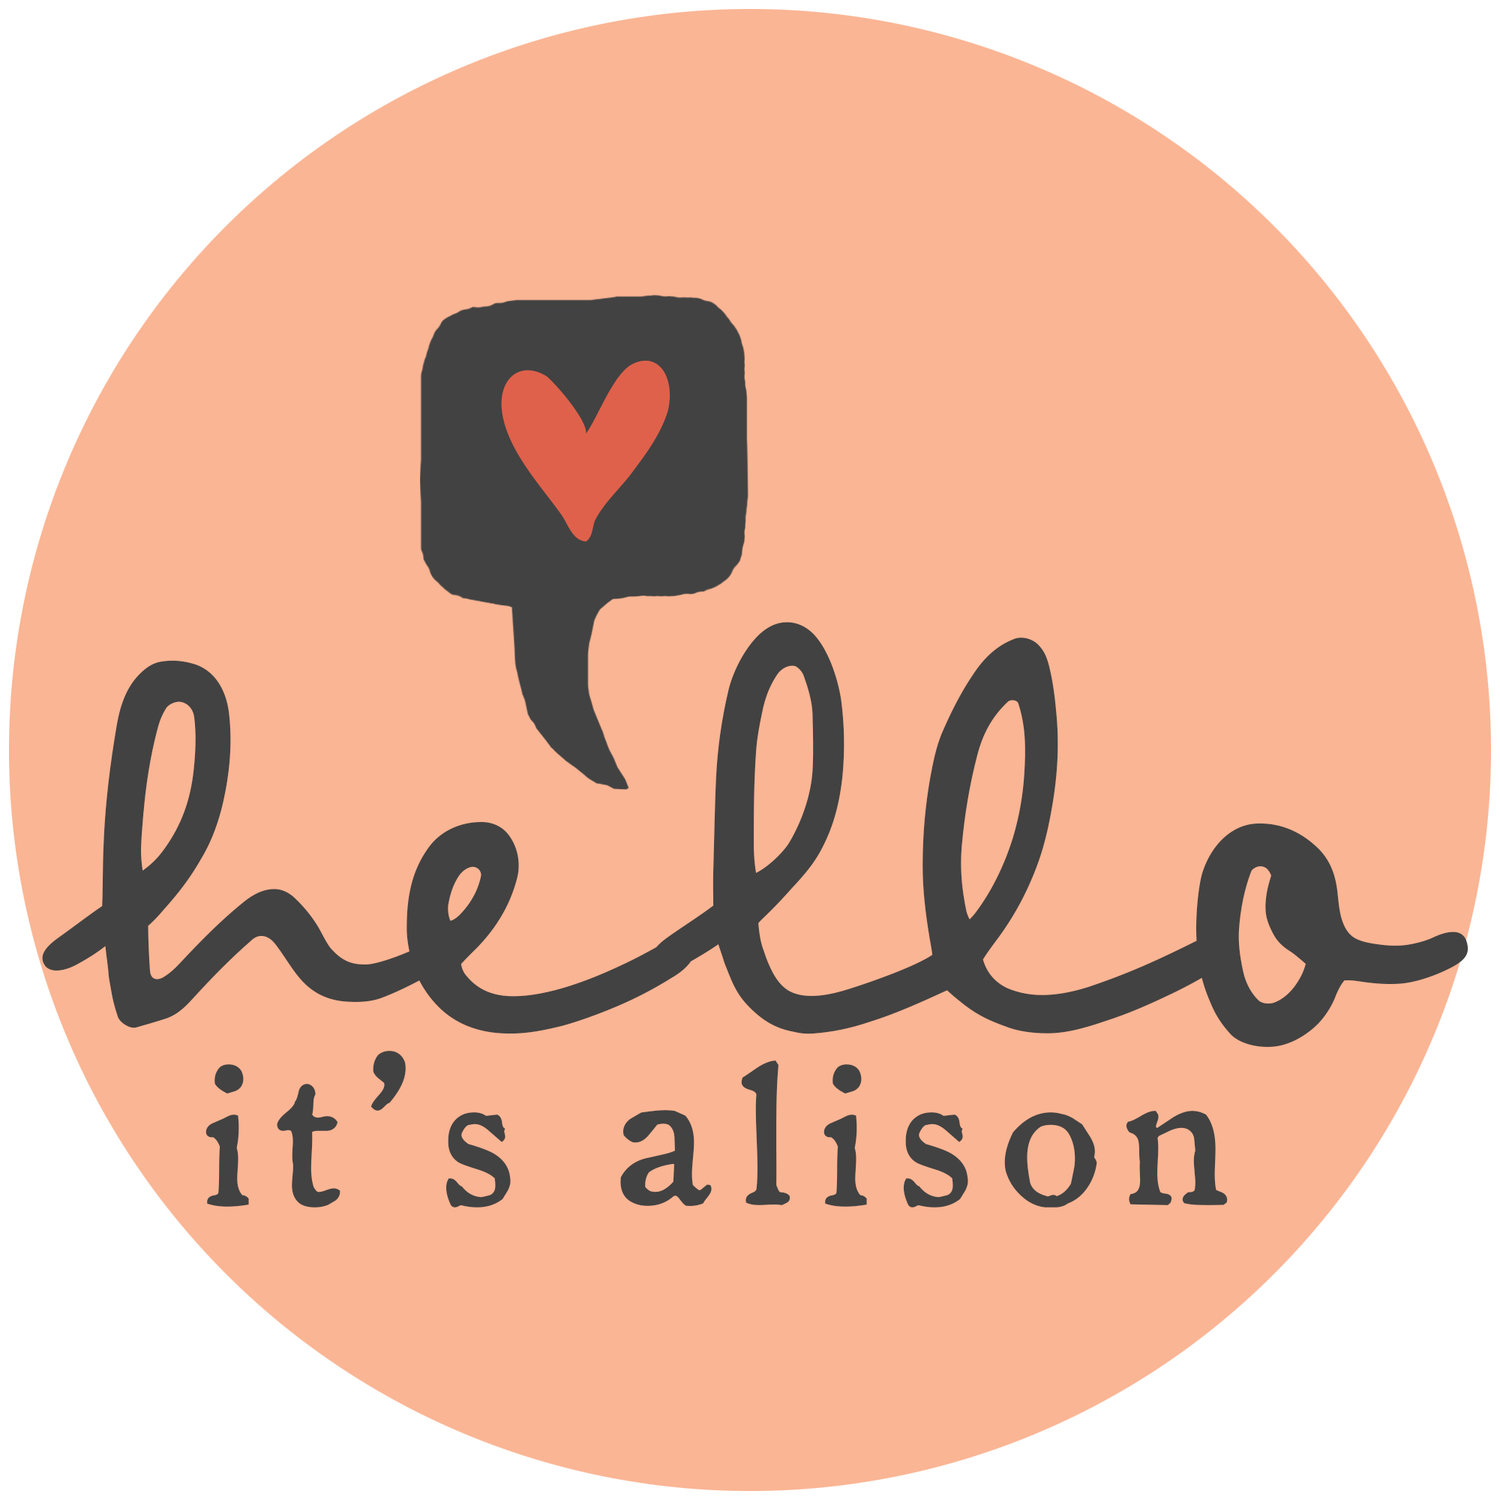 hello it's alison